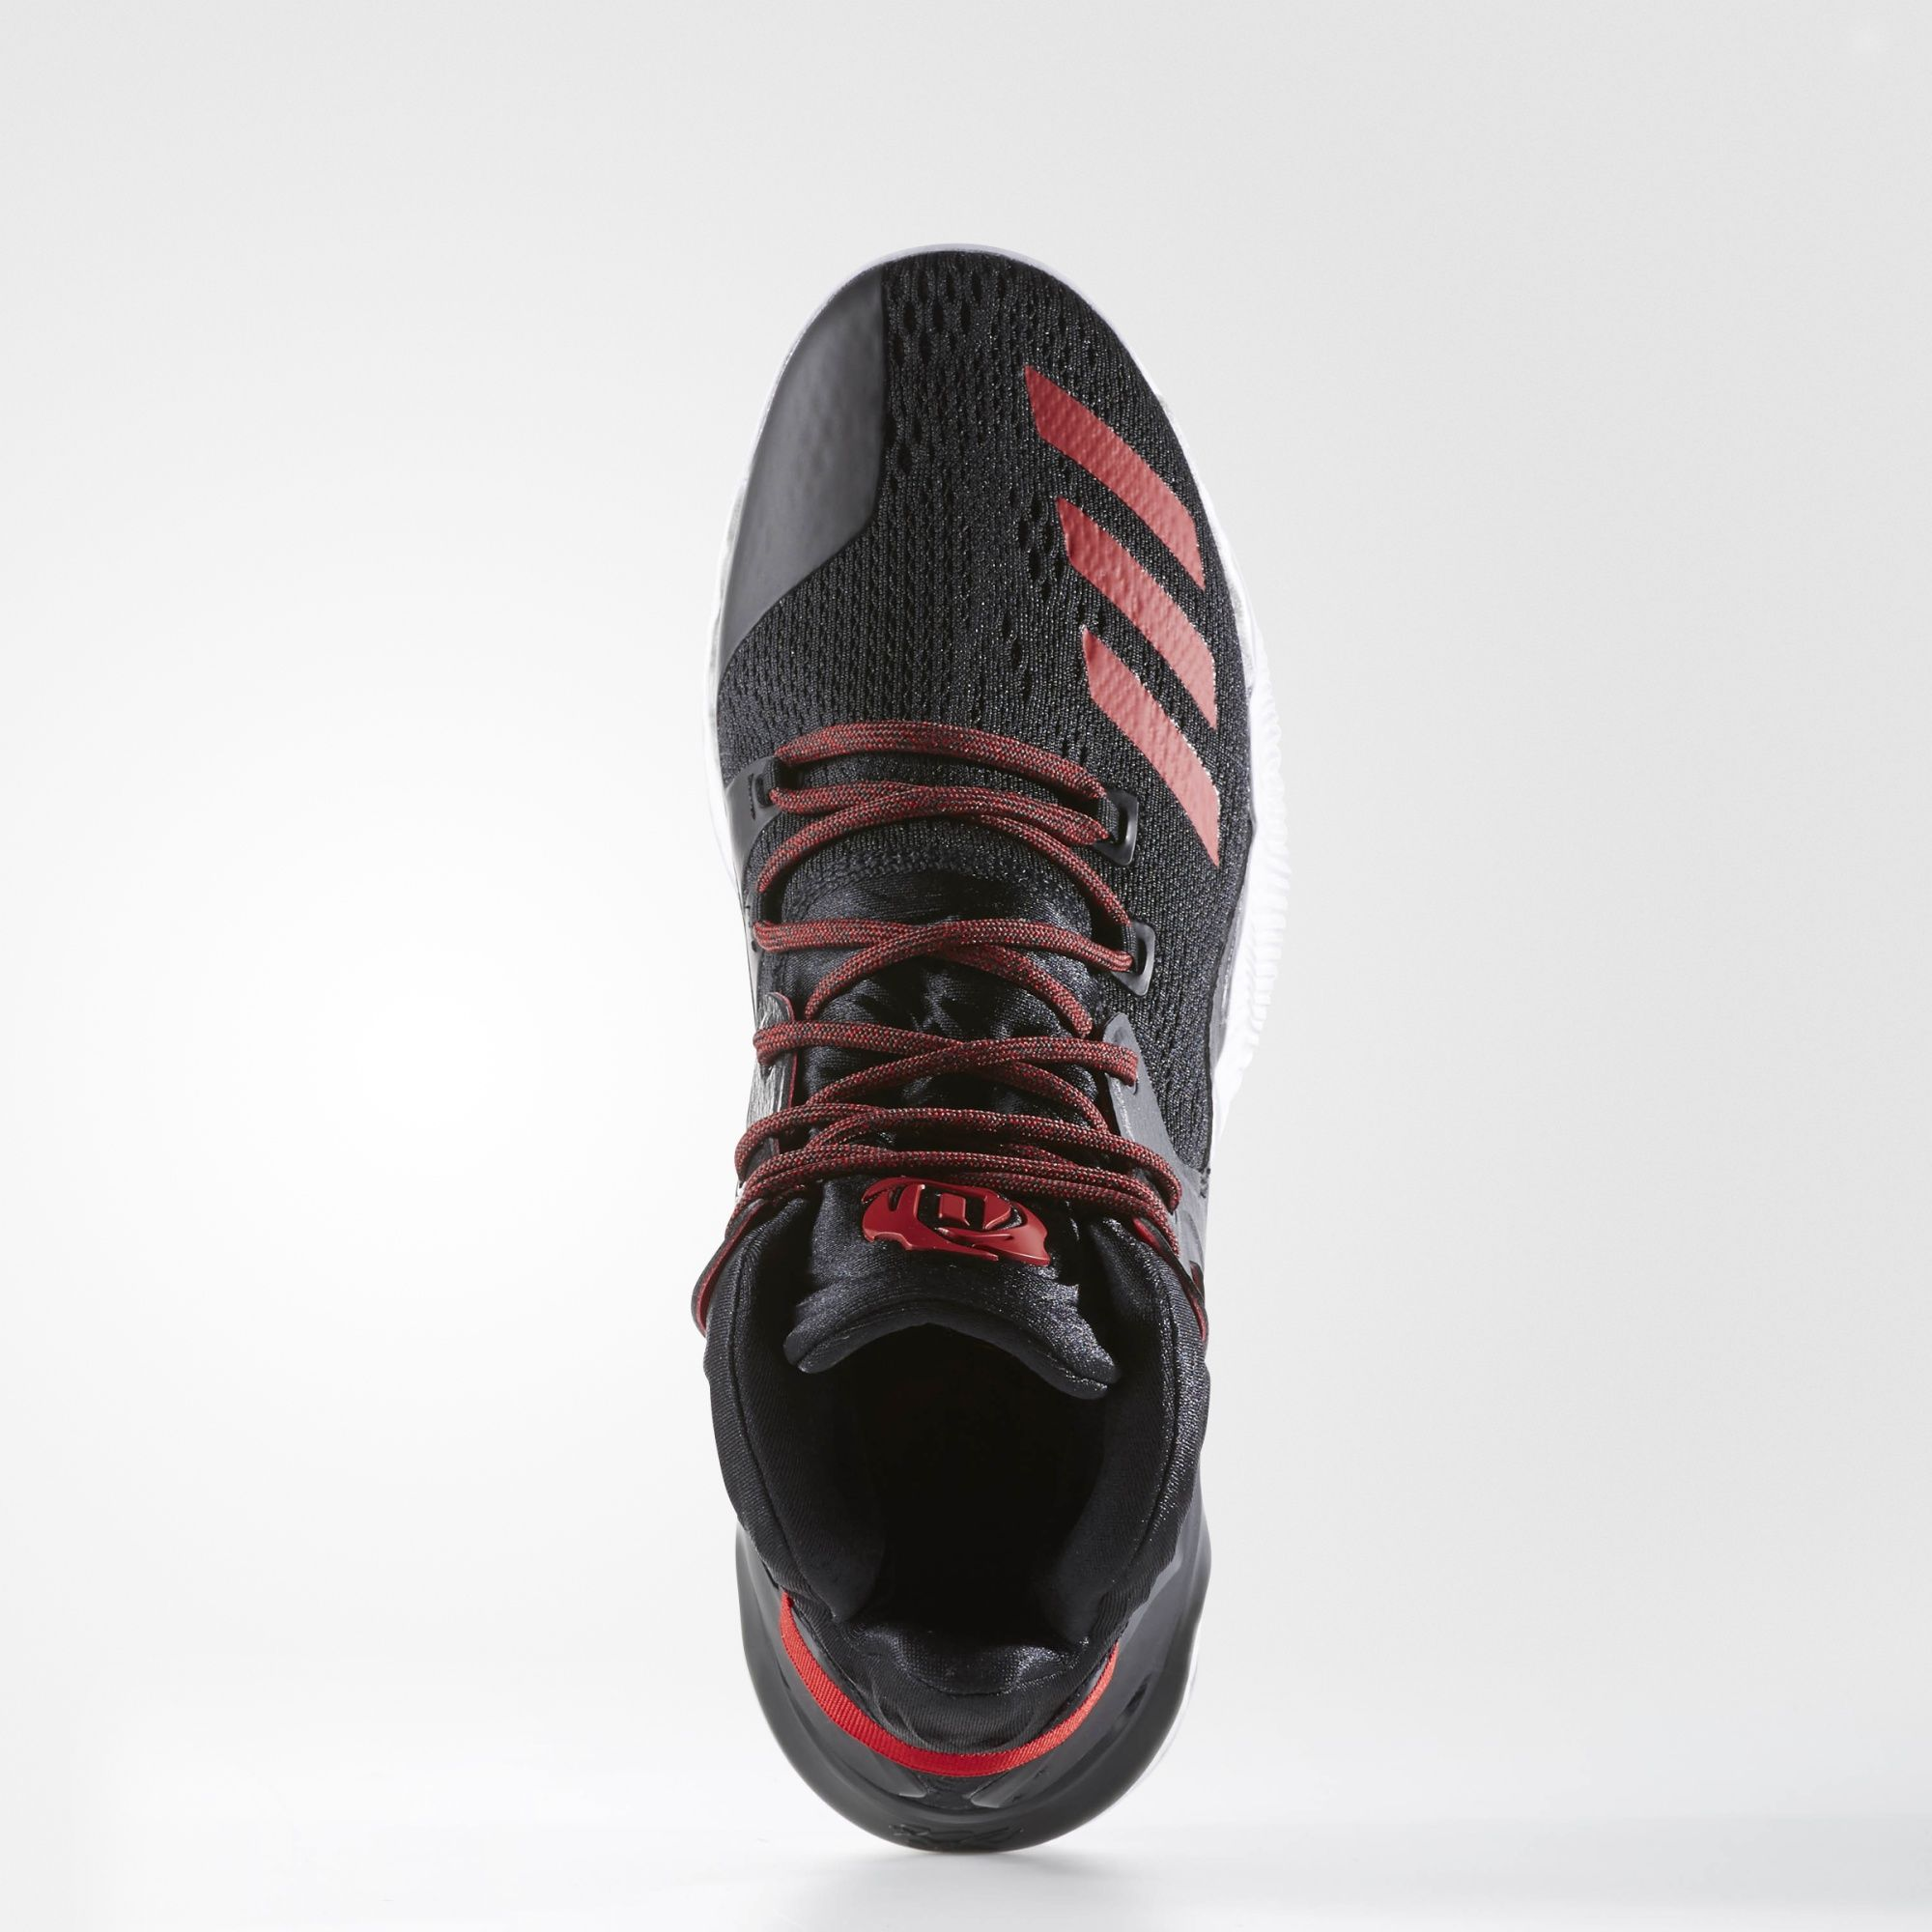 the-adidas-rose-7-in-blackscarlet-is-available-now-4